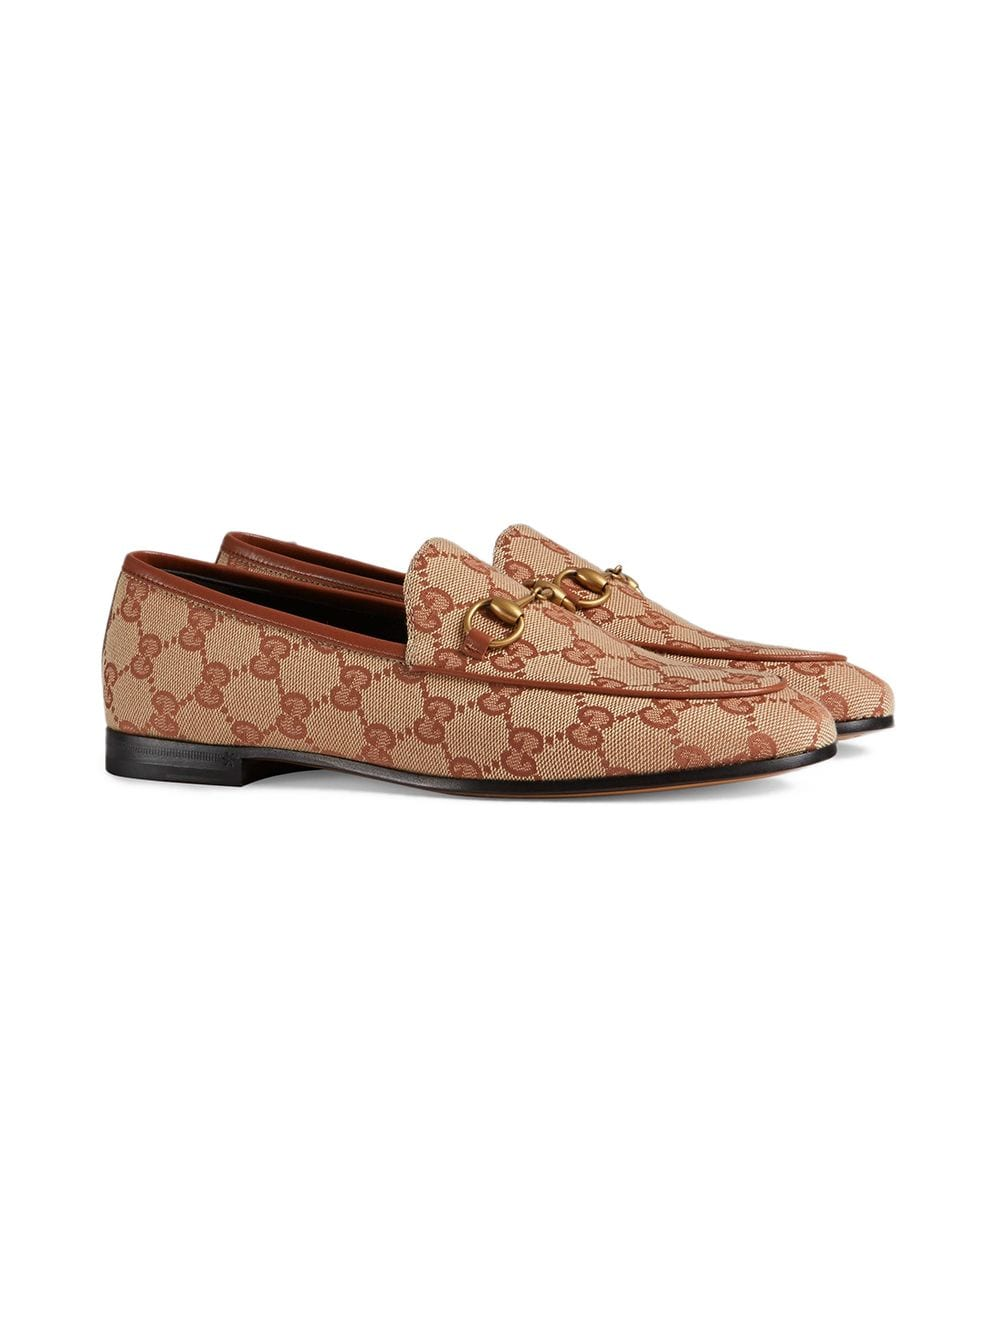 Gucci Print Loafers Farfetch.jpg